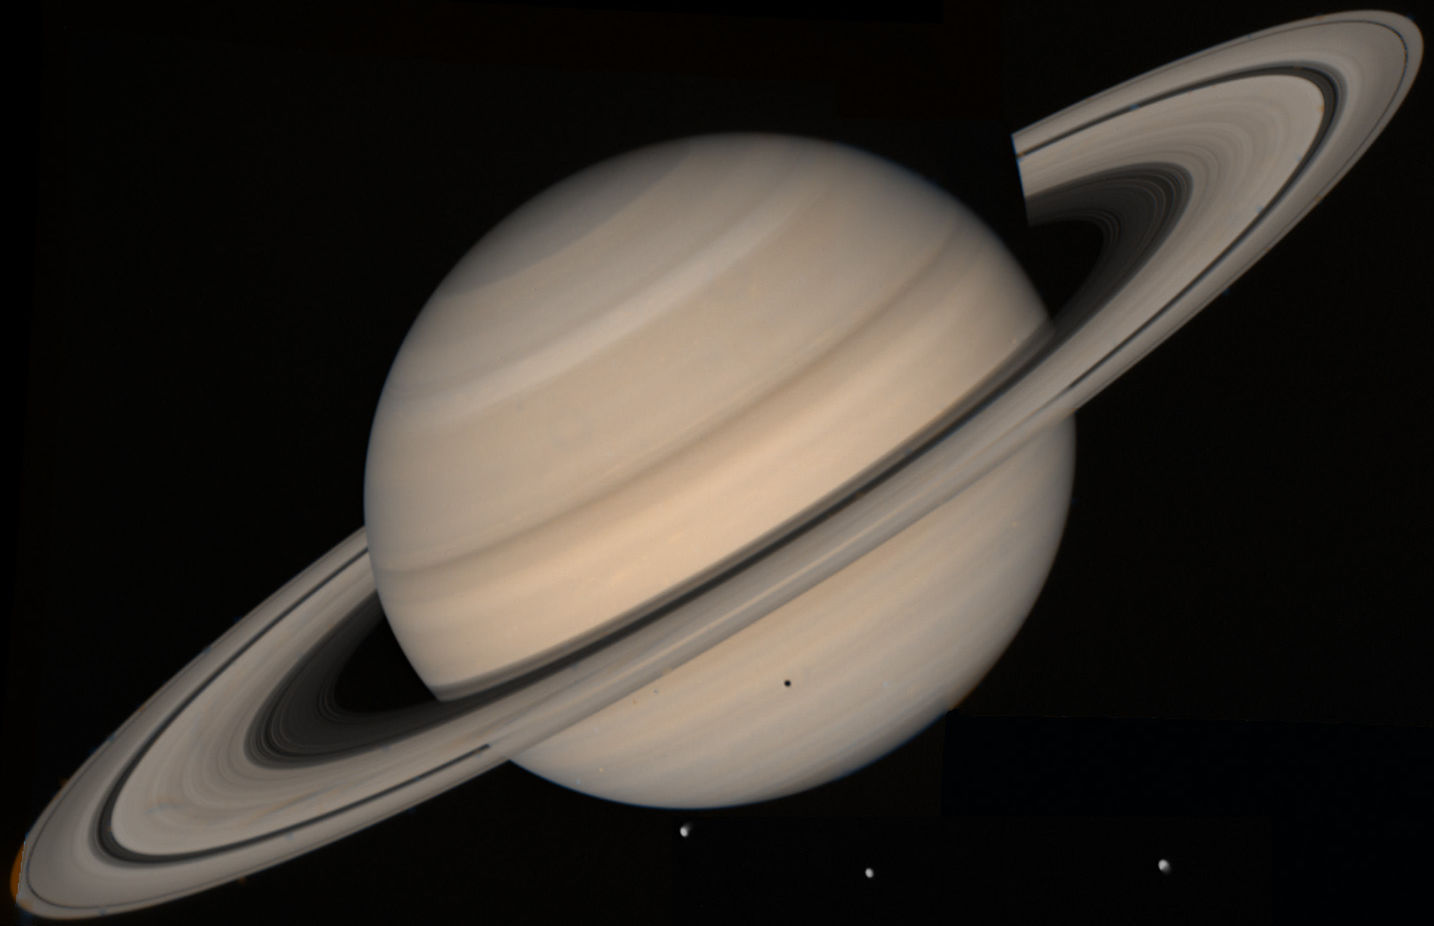 File:Saturn (planet) large rotated.jpg - Wikimedia Commons